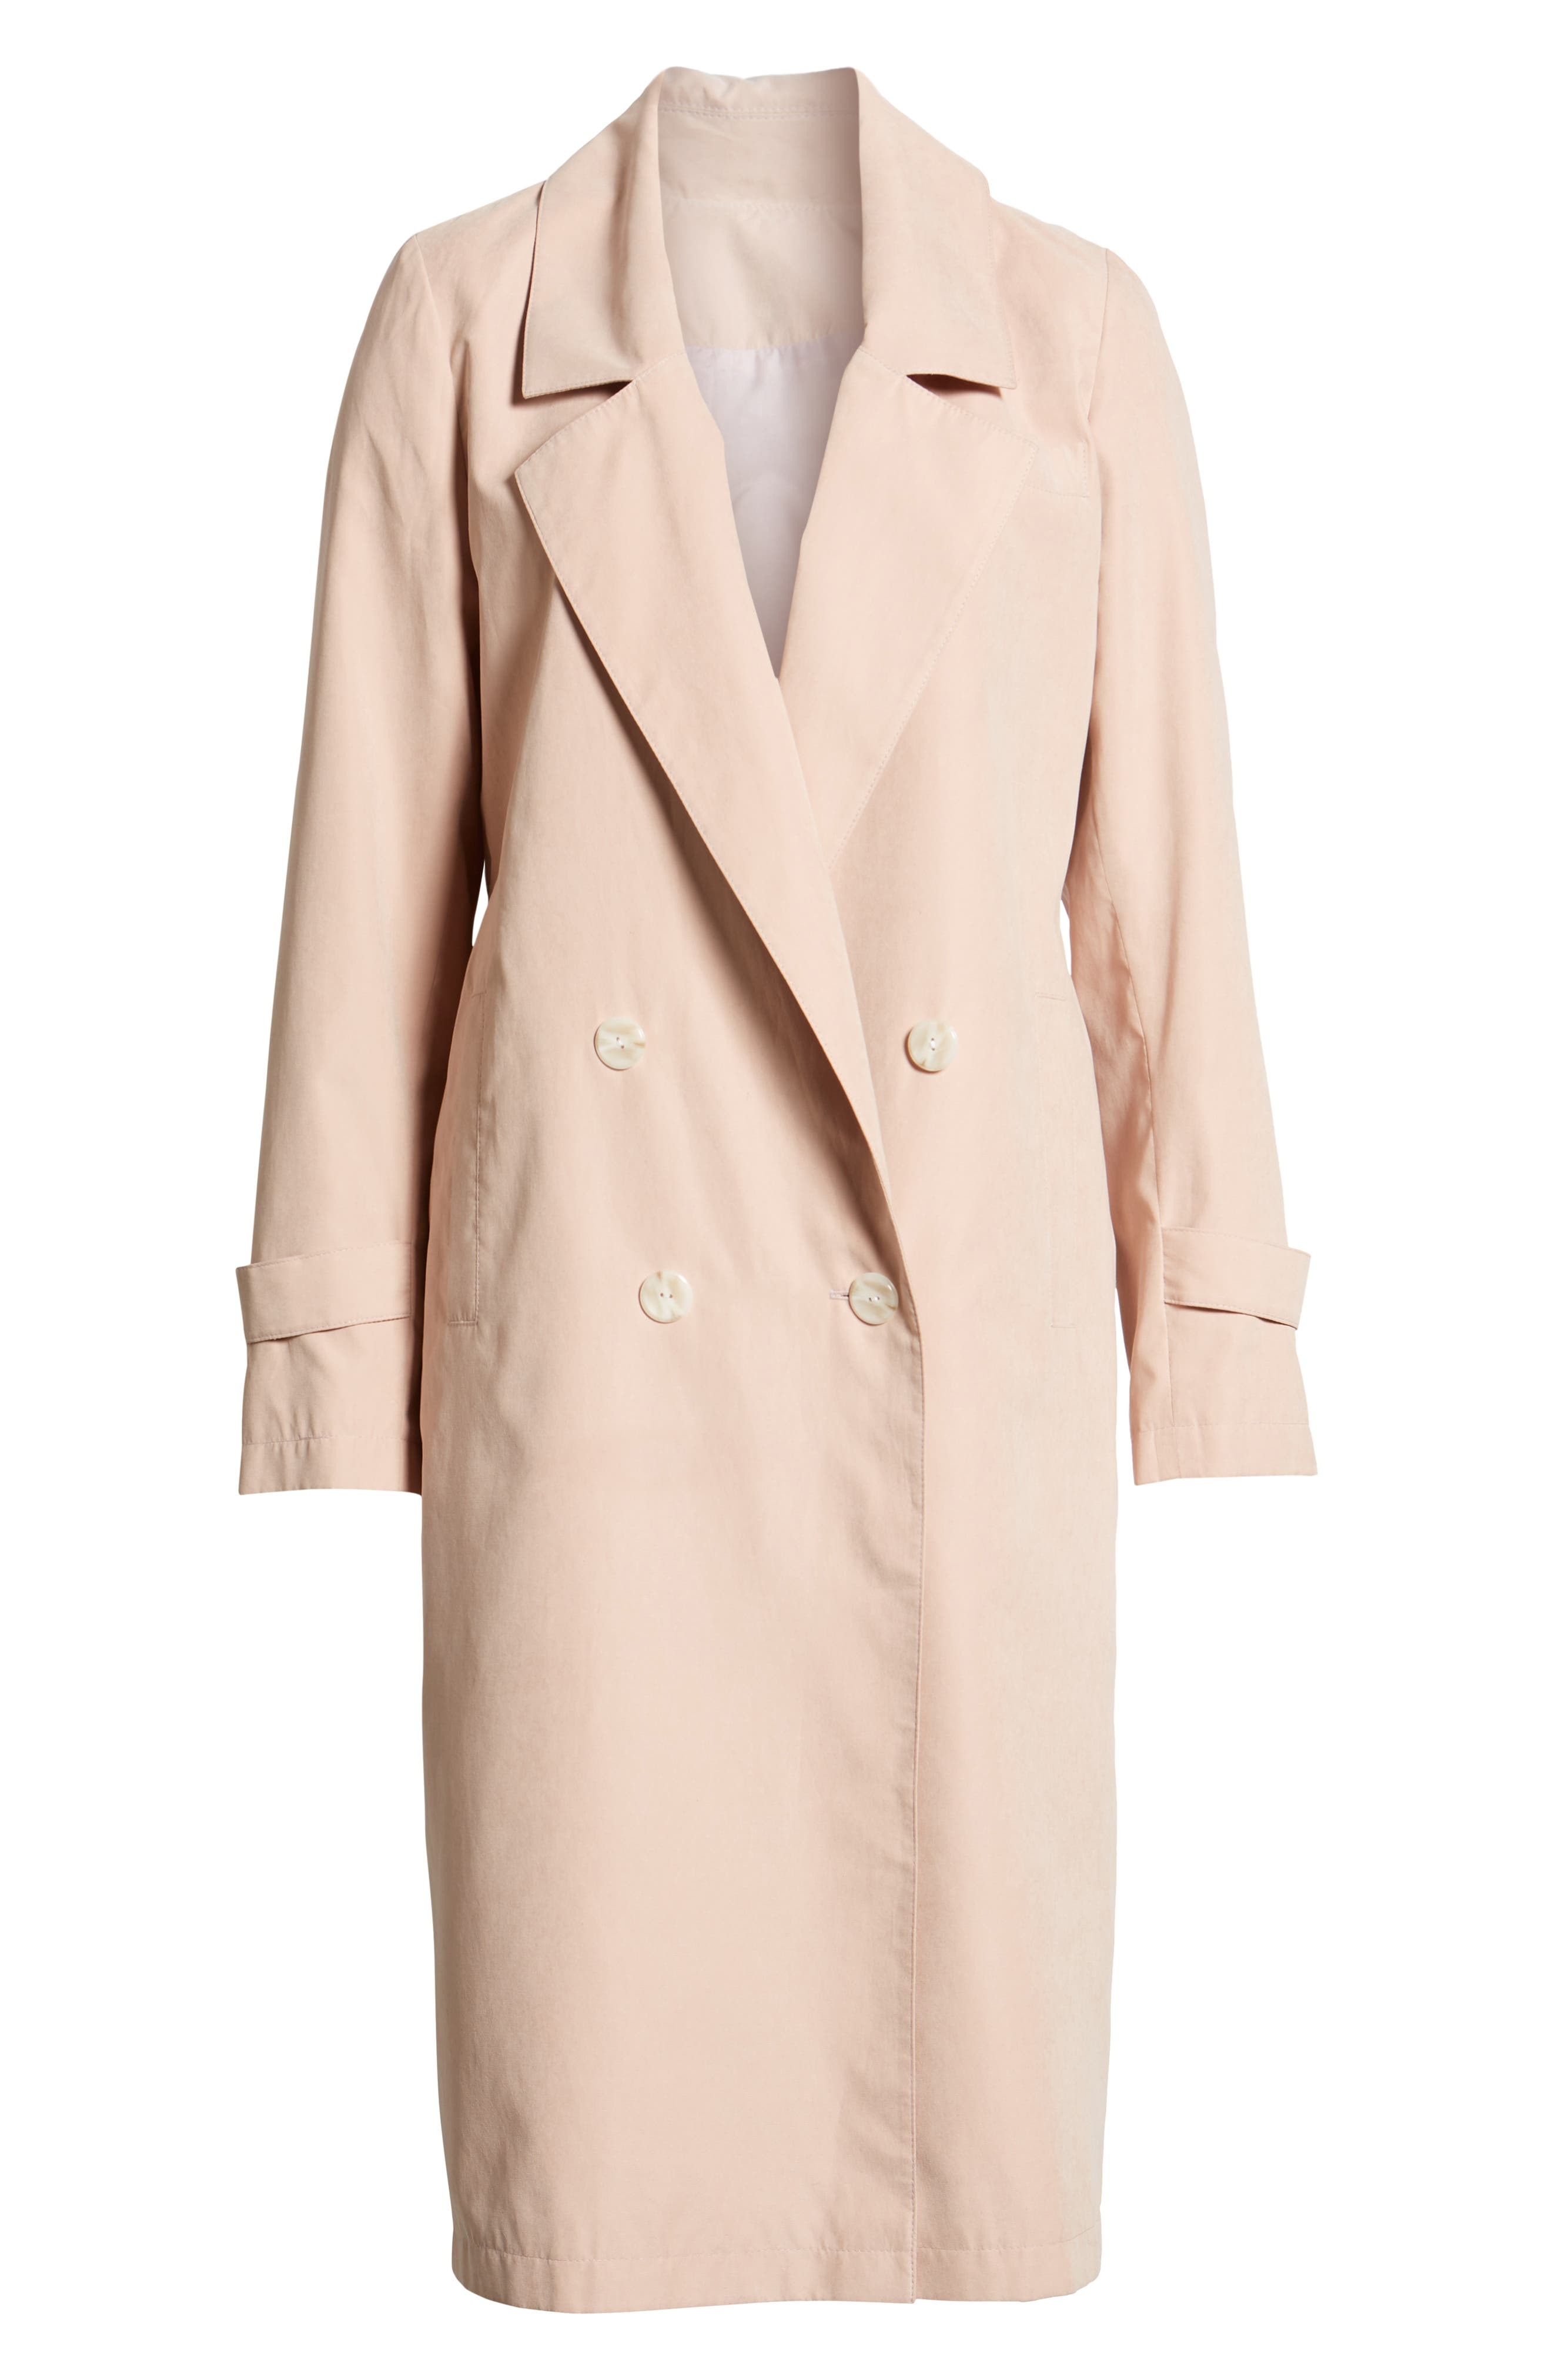 Double Breasted Trench Coat,                             Alternate thumbnail 6, color,                             680